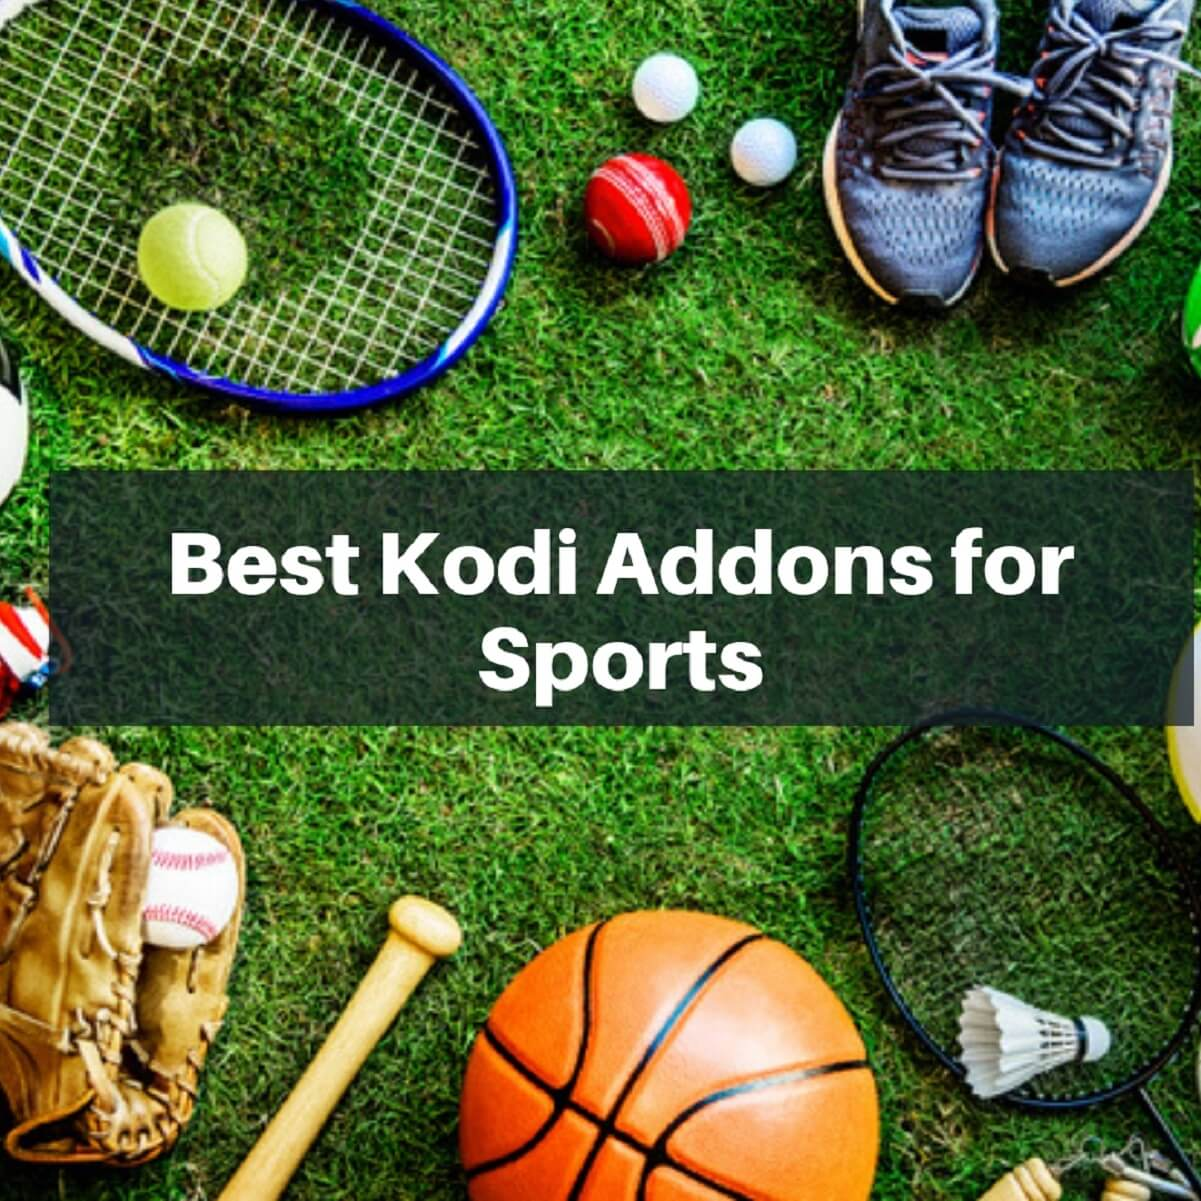 5 Best Kodi Addons for Sports| Watch Live Sports & PPV Events